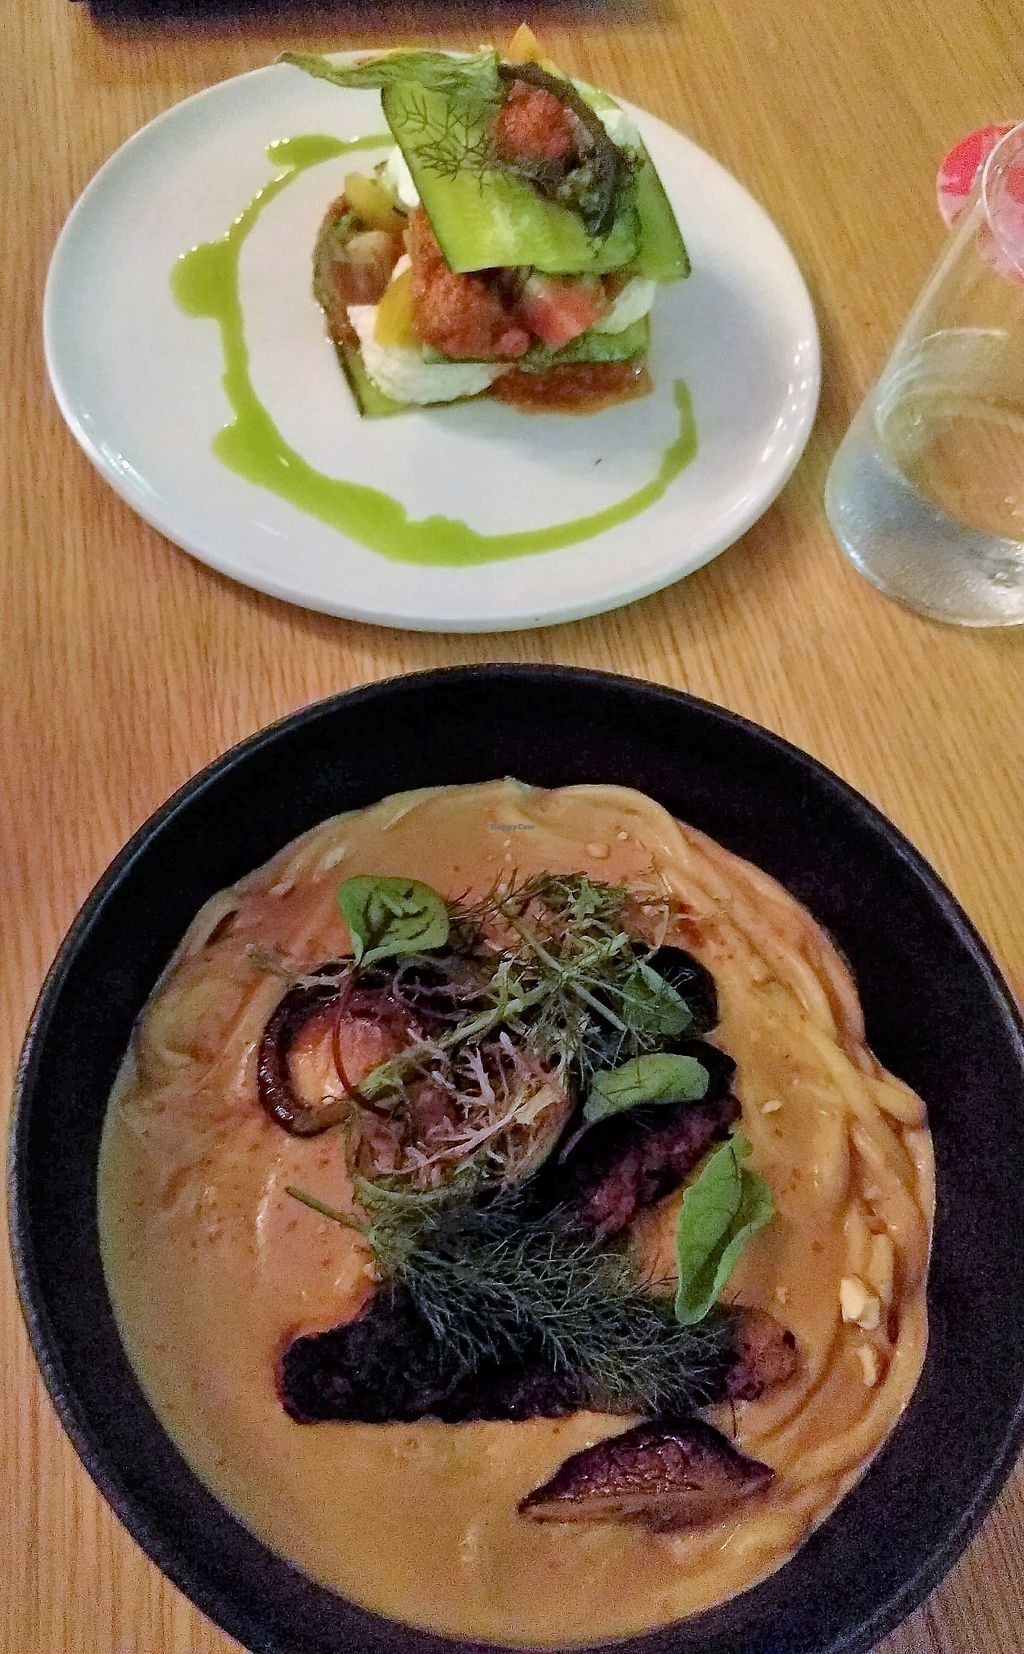 """Photo of Alibi  by <a href=""""/members/profile/Cycliz"""">Cycliz</a> <br/>Zucchini lasagna with dried tomato sauce, heirloom tomatoes and macadamia ricotta Spicy udon with chickpea tempeh and shiitake mushrooms <br/> April 8, 2018  - <a href='/contact/abuse/image/115266/382231'>Report</a>"""